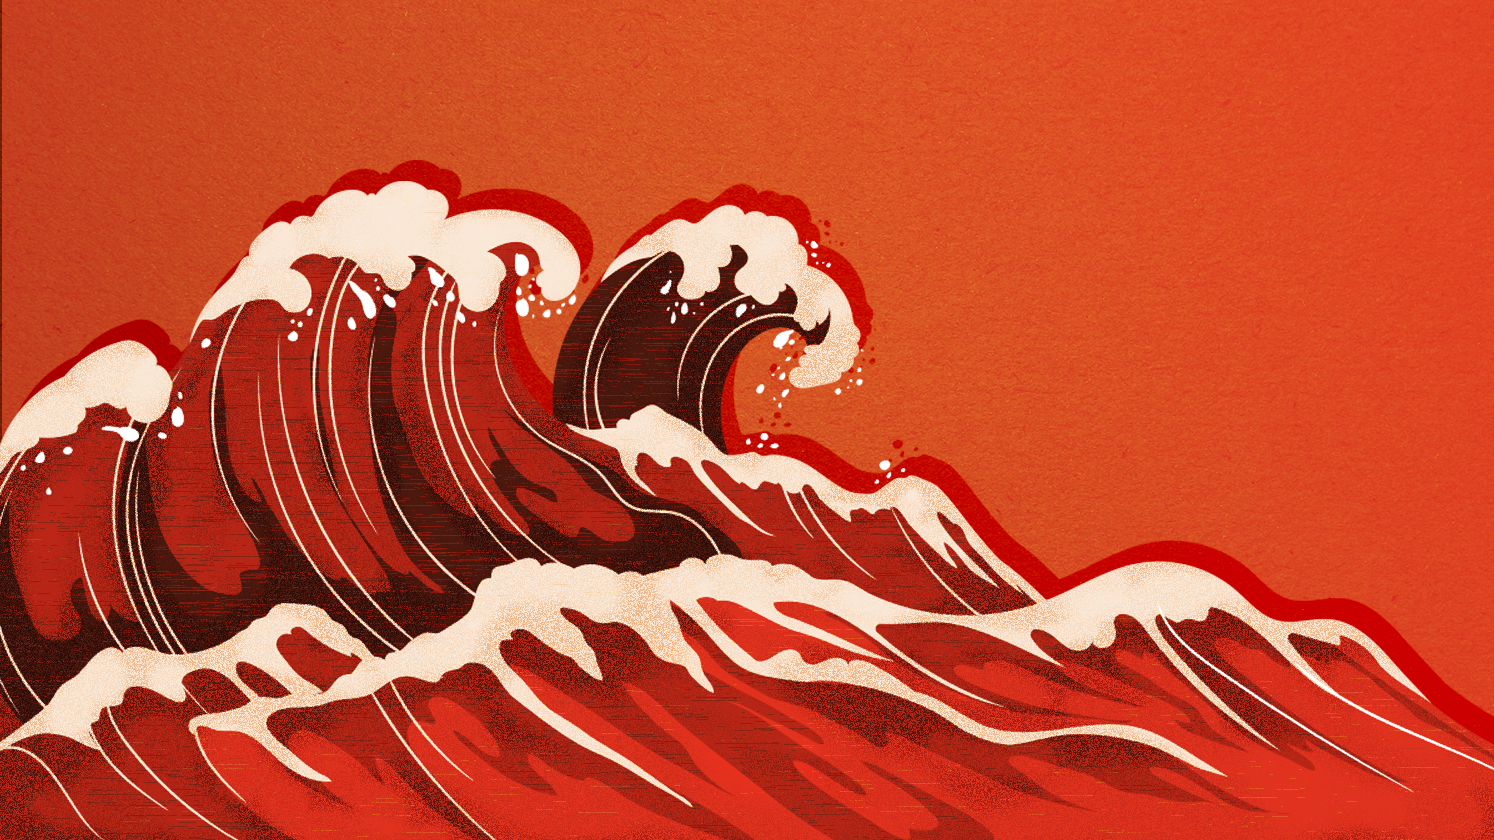 """President Trump has been pushing back on the notion of a """"blue wave,"""" and embracing the idea of a """"red wave."""" But the adaptation of """"red"""" is a popular culture shift from the Cold War."""